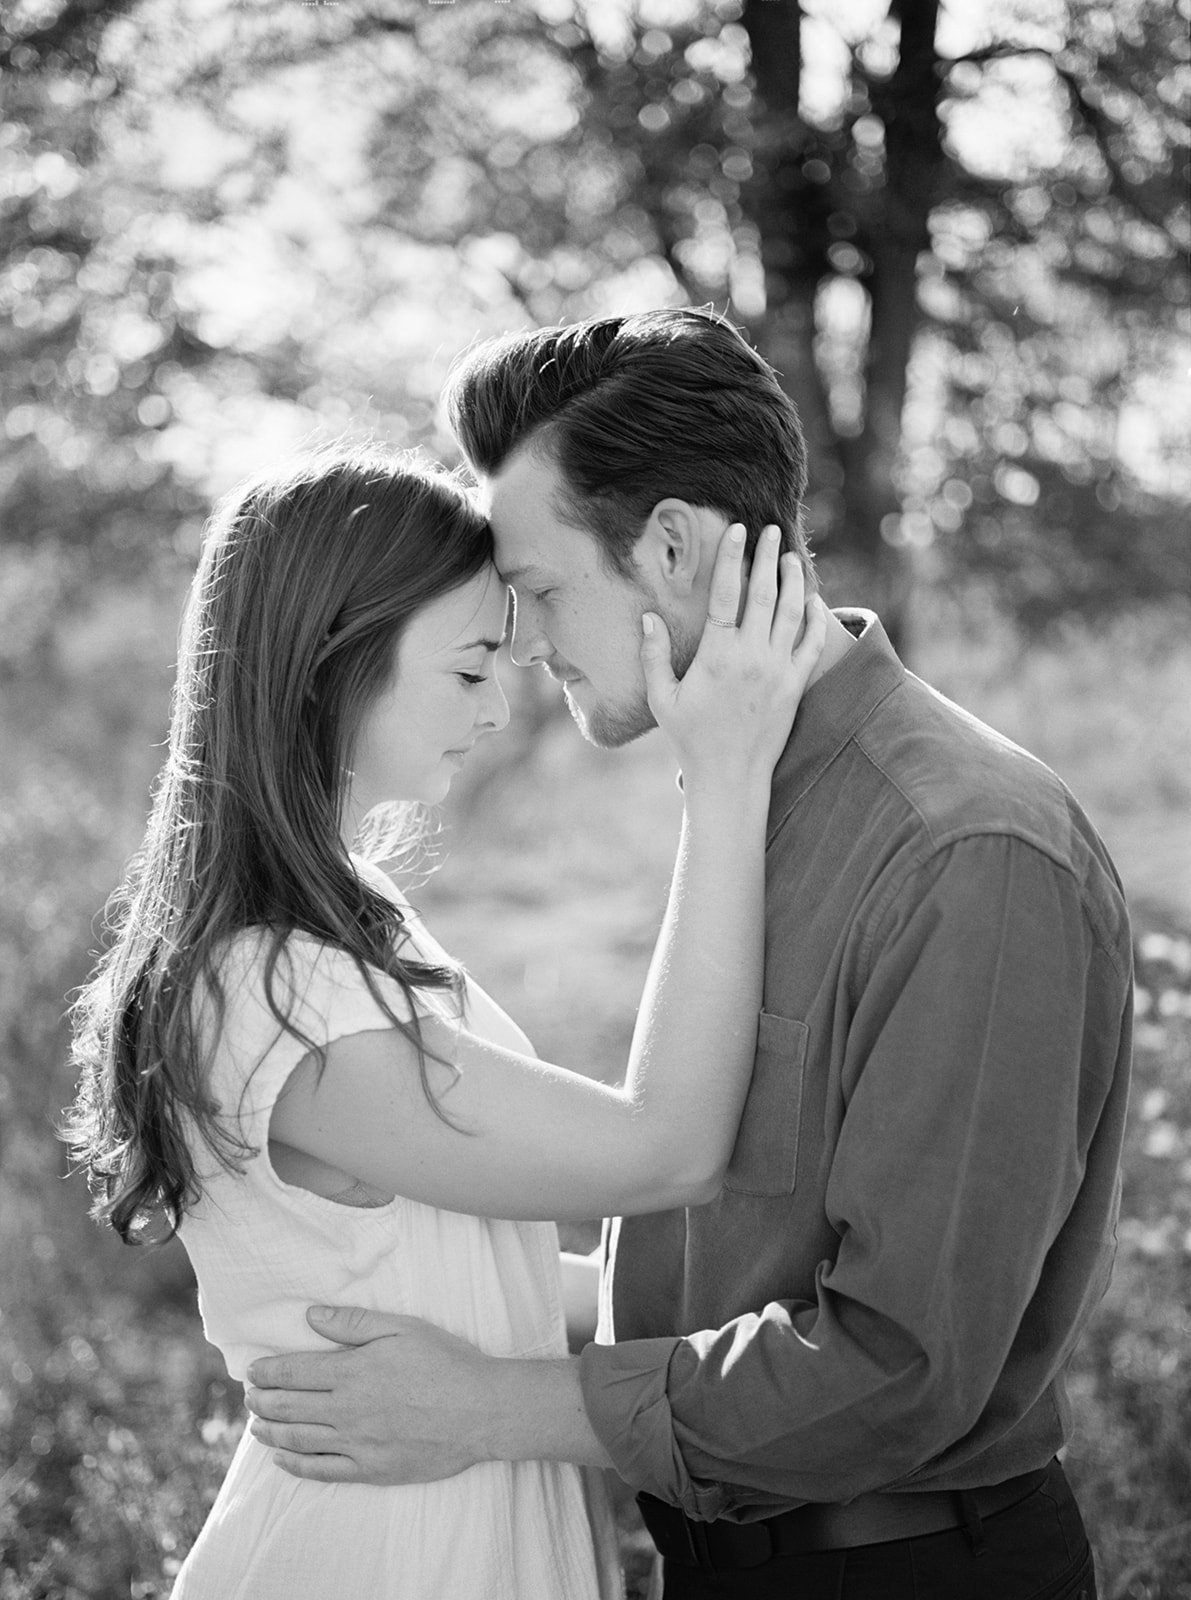 michela-brooke-photo-maryclaire-caleb-farm-engagement-17-2_websize